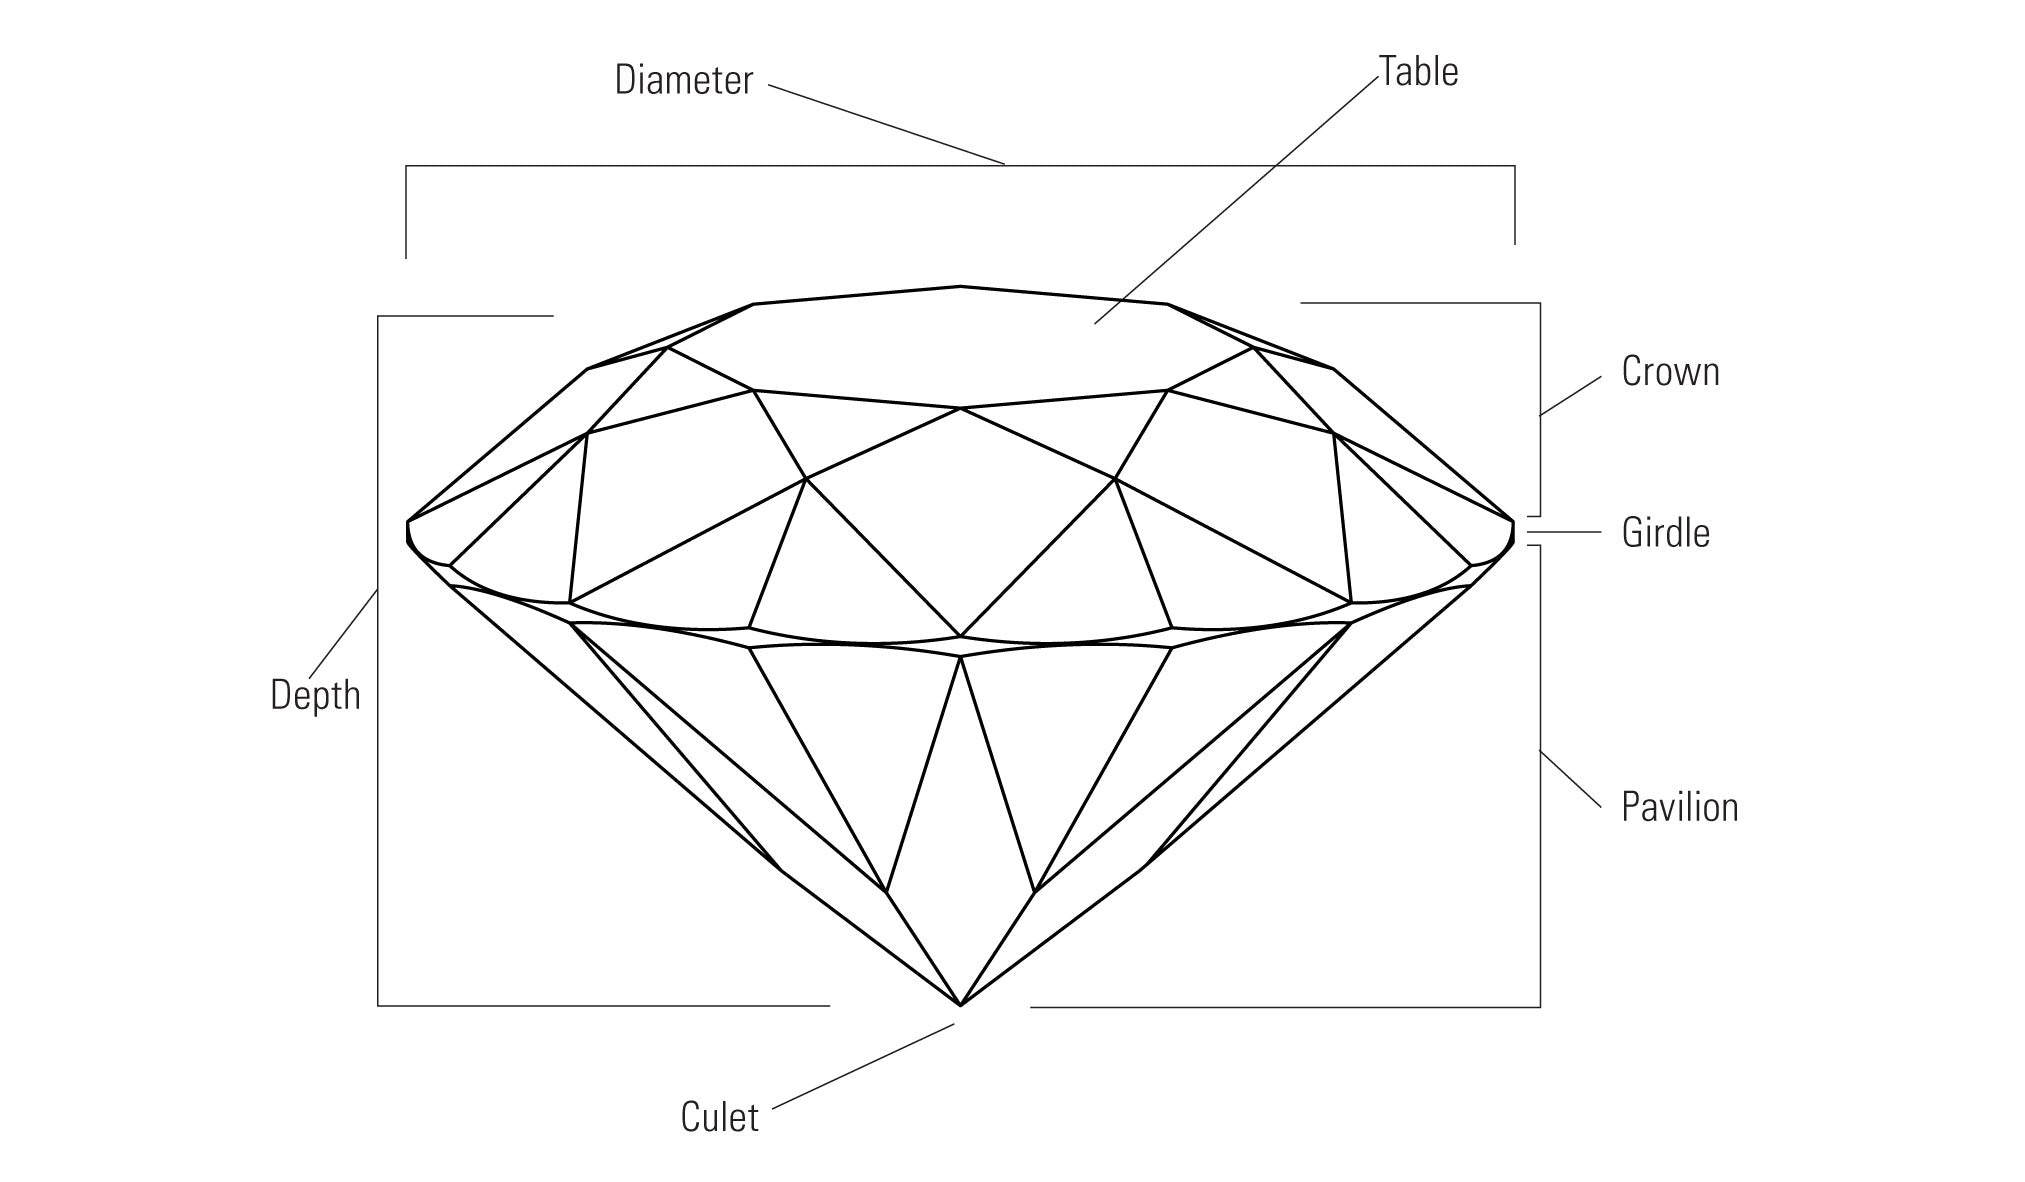 Diamonds. The parts of a diamond are the diamond diameter, diamond depth, diamond table, diamond crown, diamond girdle, diamond pavilion and diamond cutlet